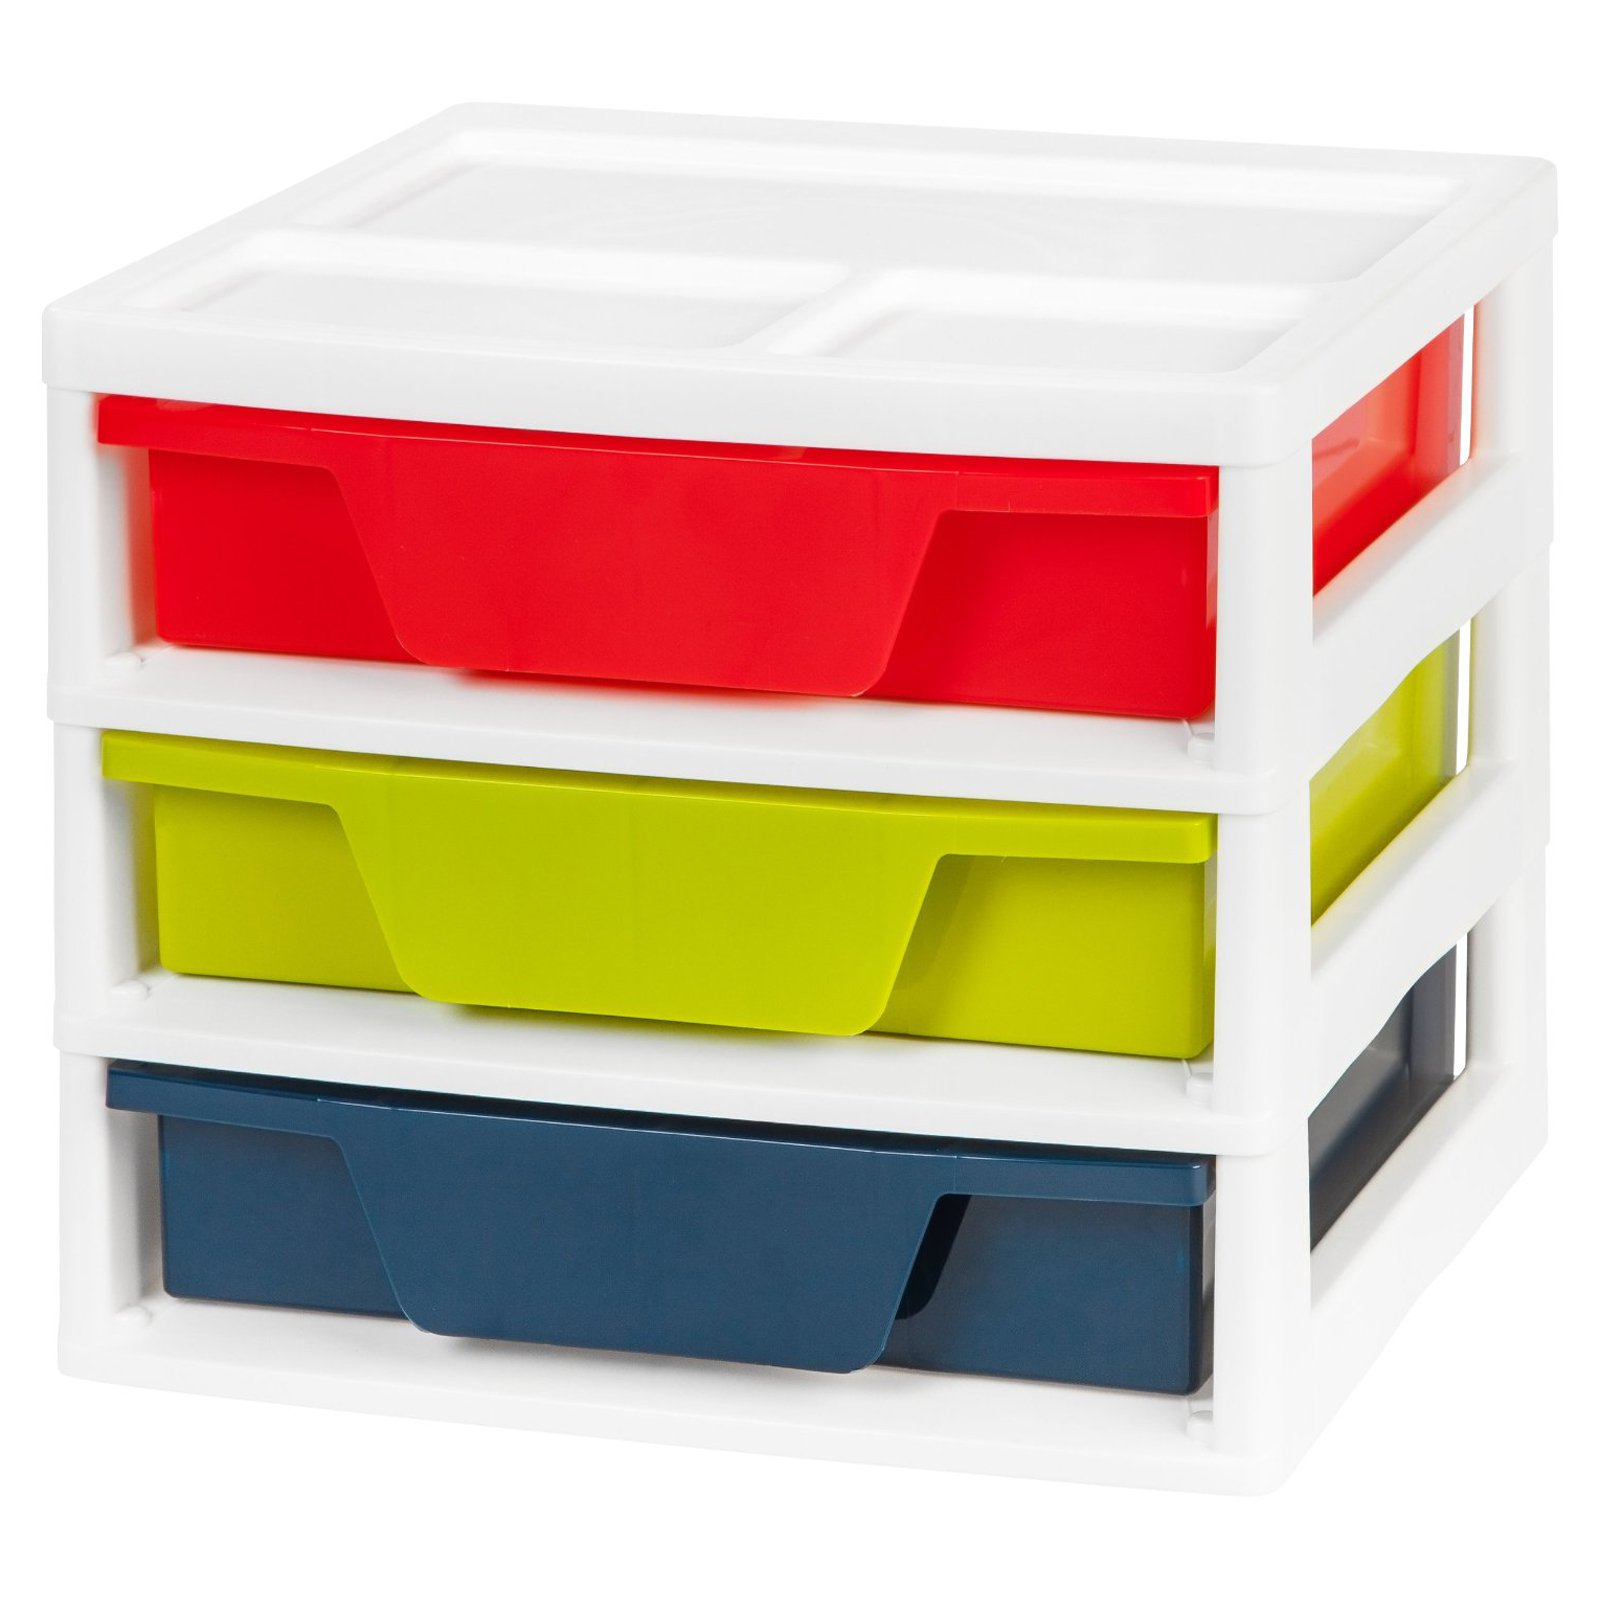 IRIS 3-Case Activity Storage Chest with Organizer Top, Multicolor